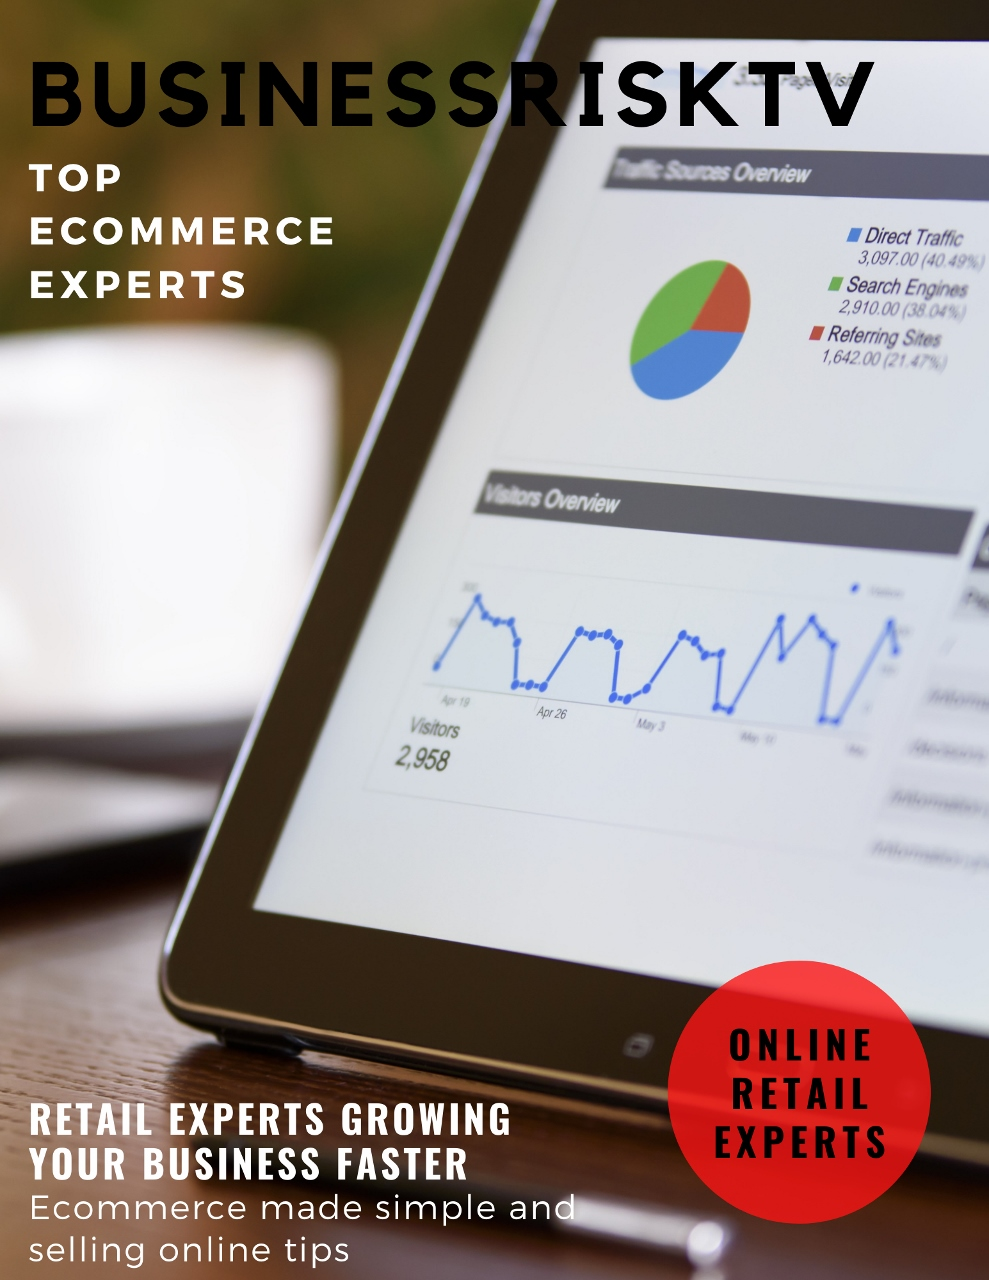 Online Retail Experts